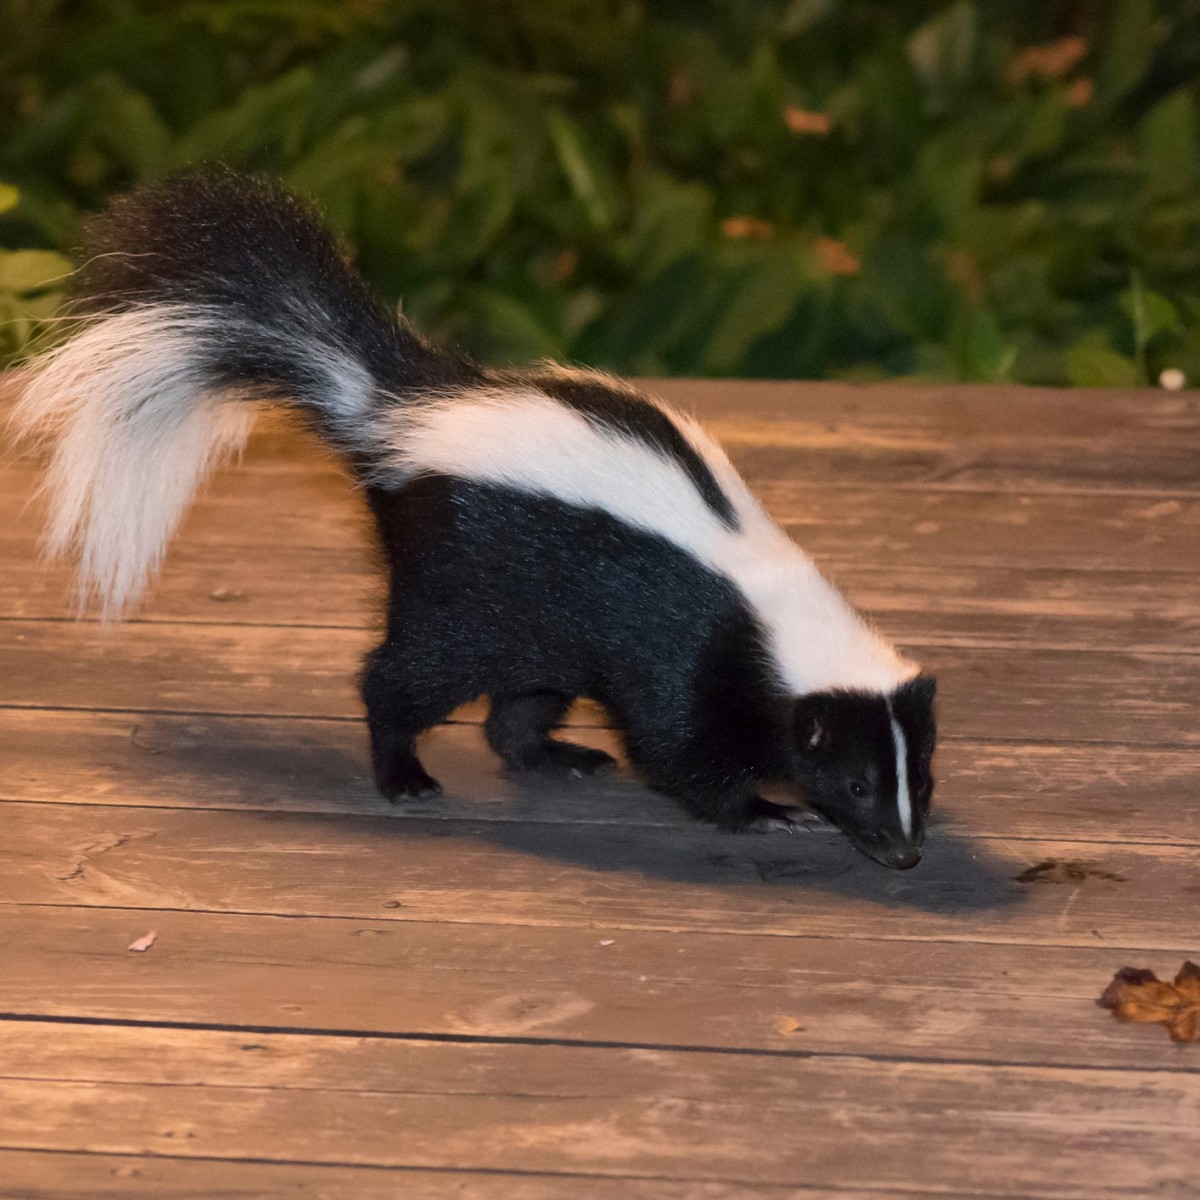 Removing Skunk Smell from House   ThriftyFun